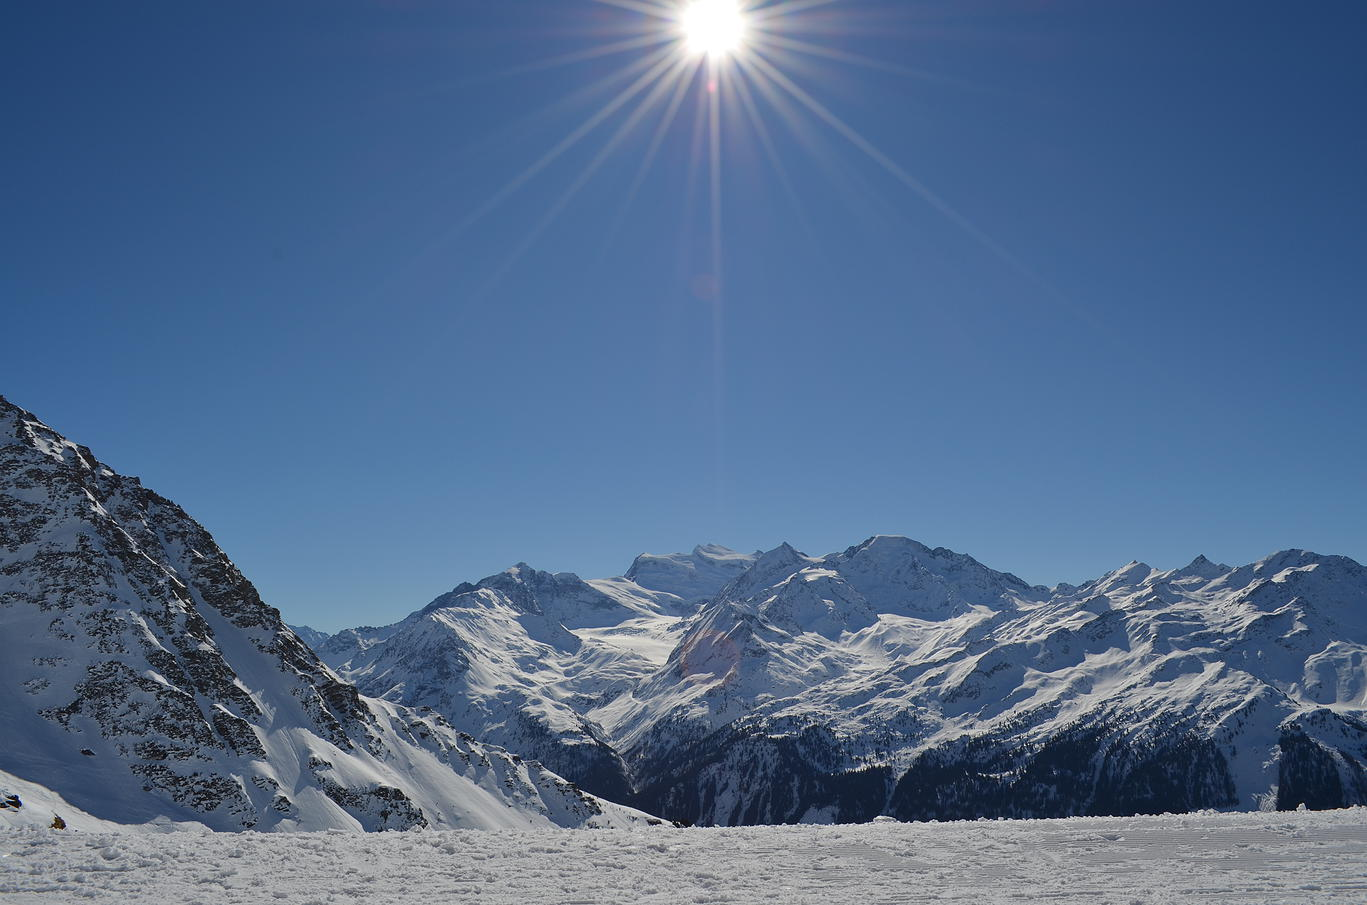 The Spirit of Snow at Verbier, Swiss